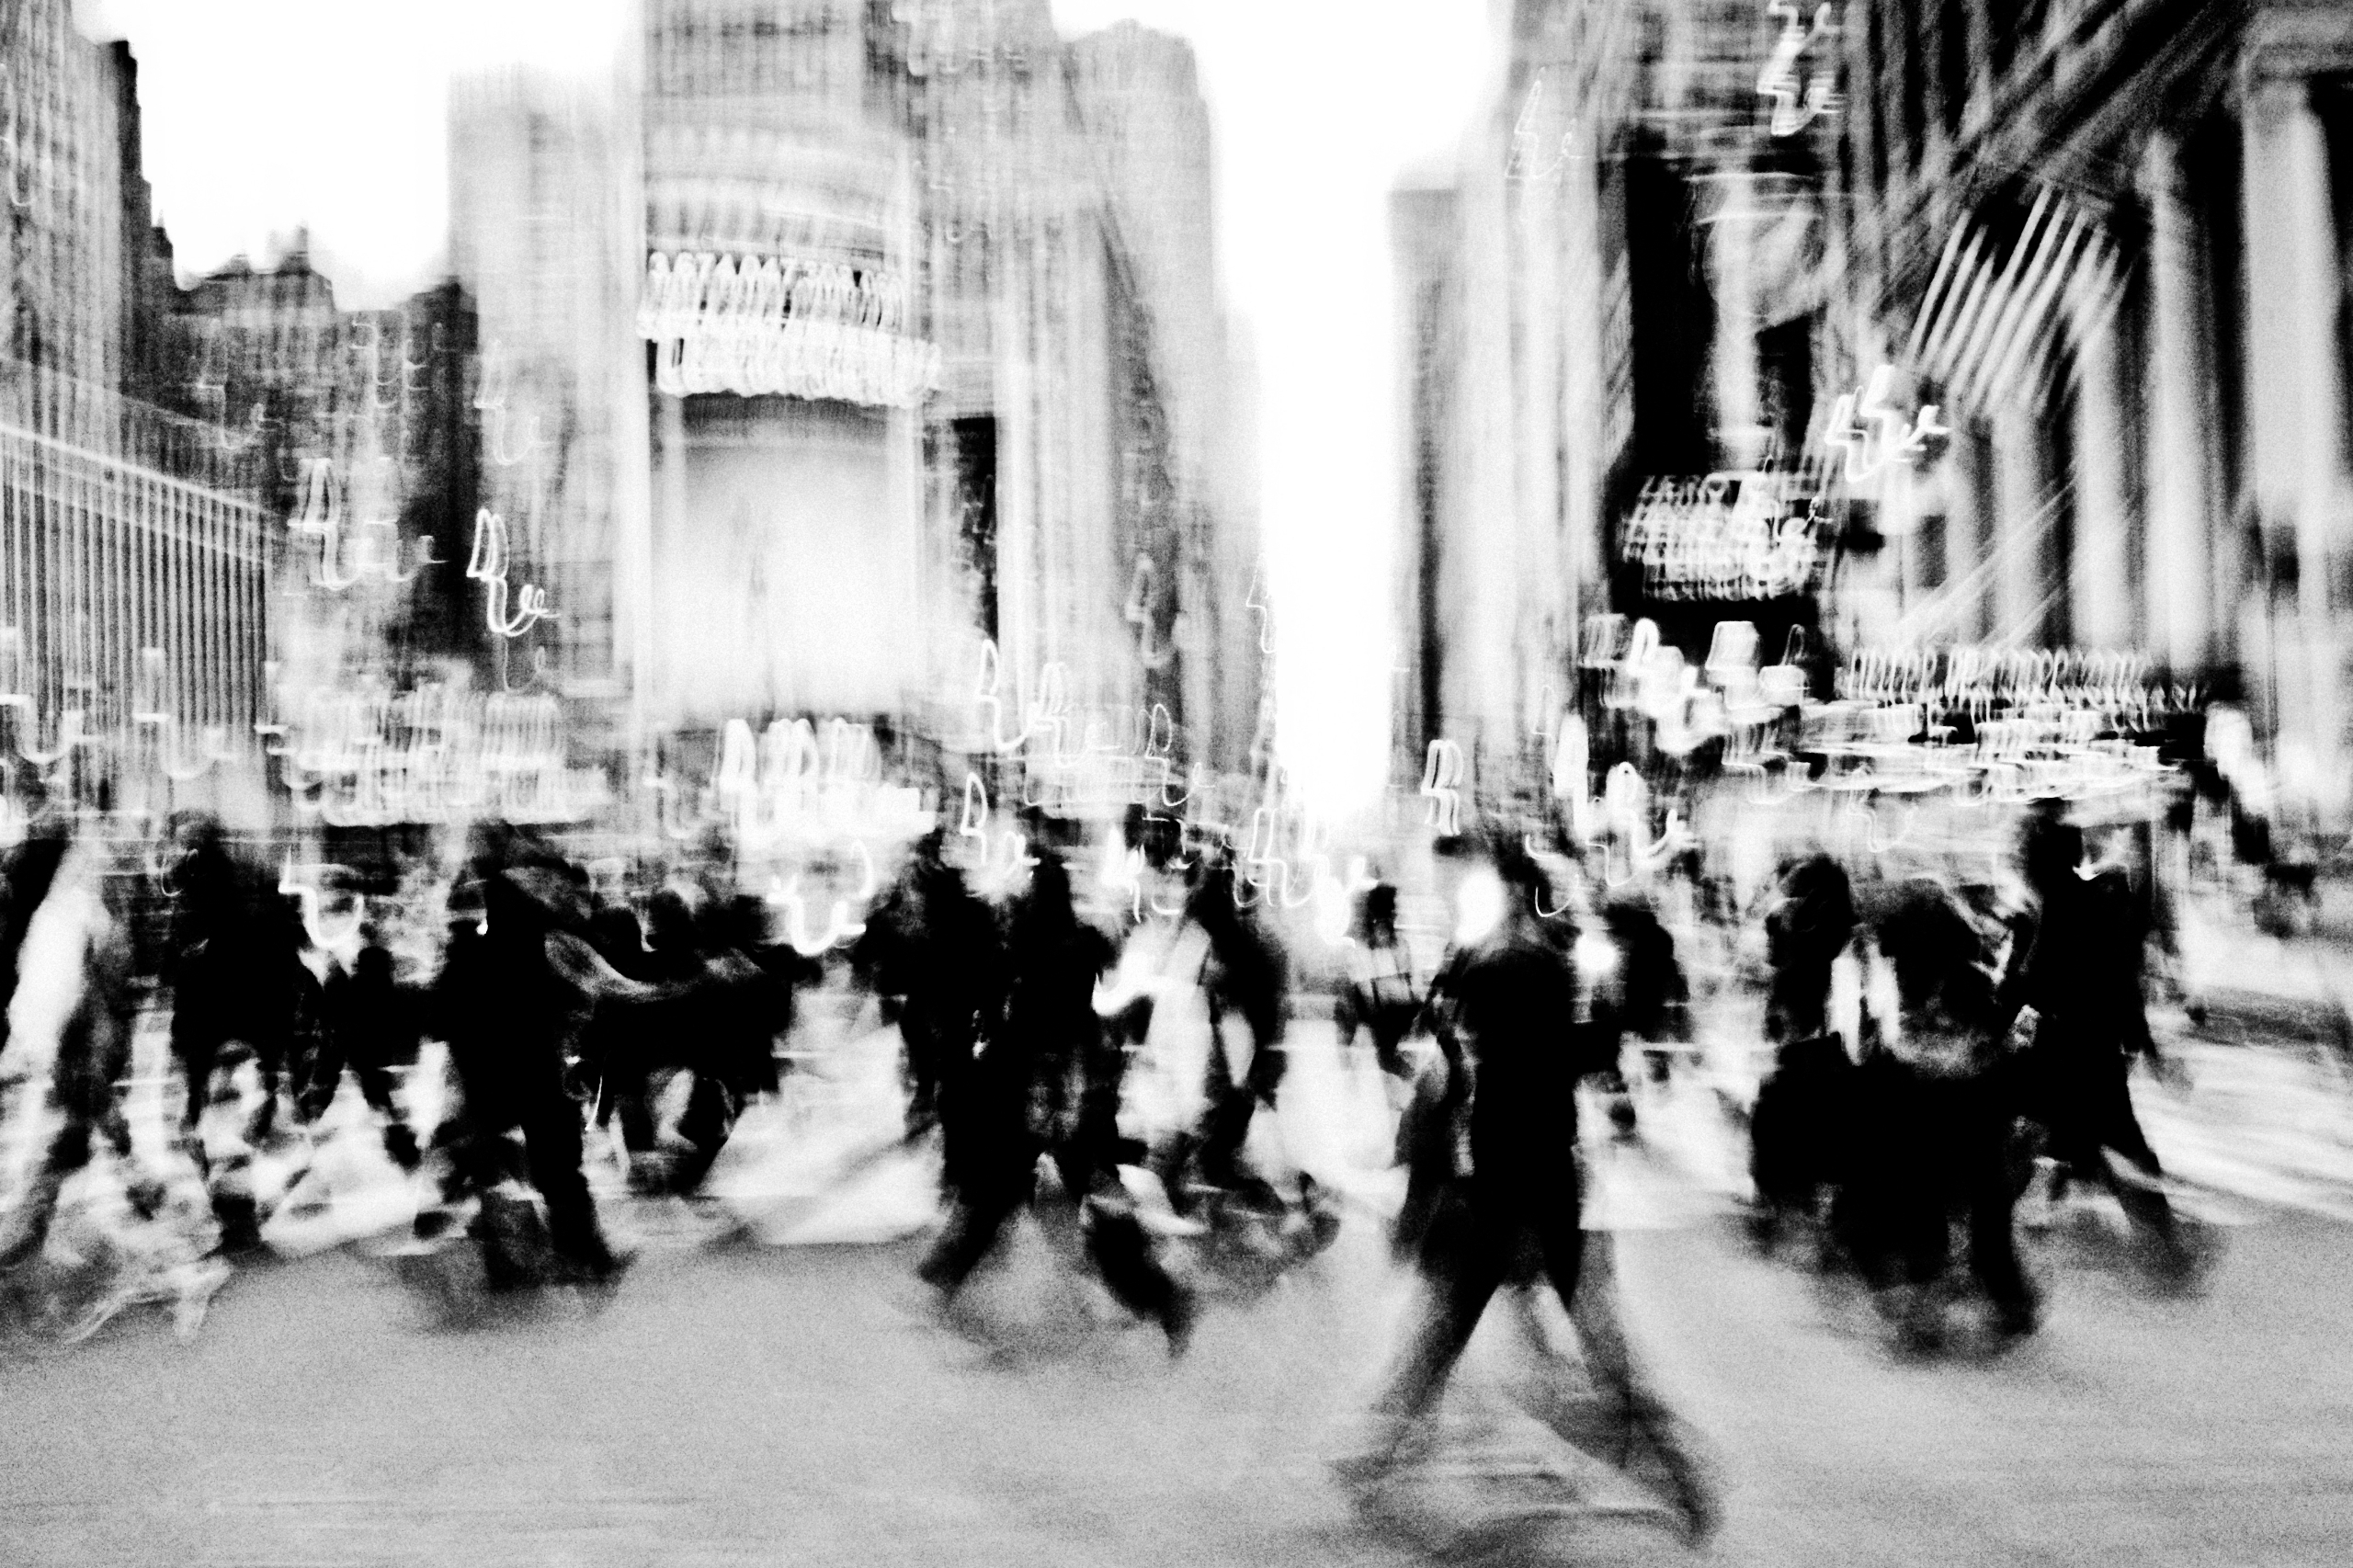 7th Ave Abstract - michaelpennphotography   ello